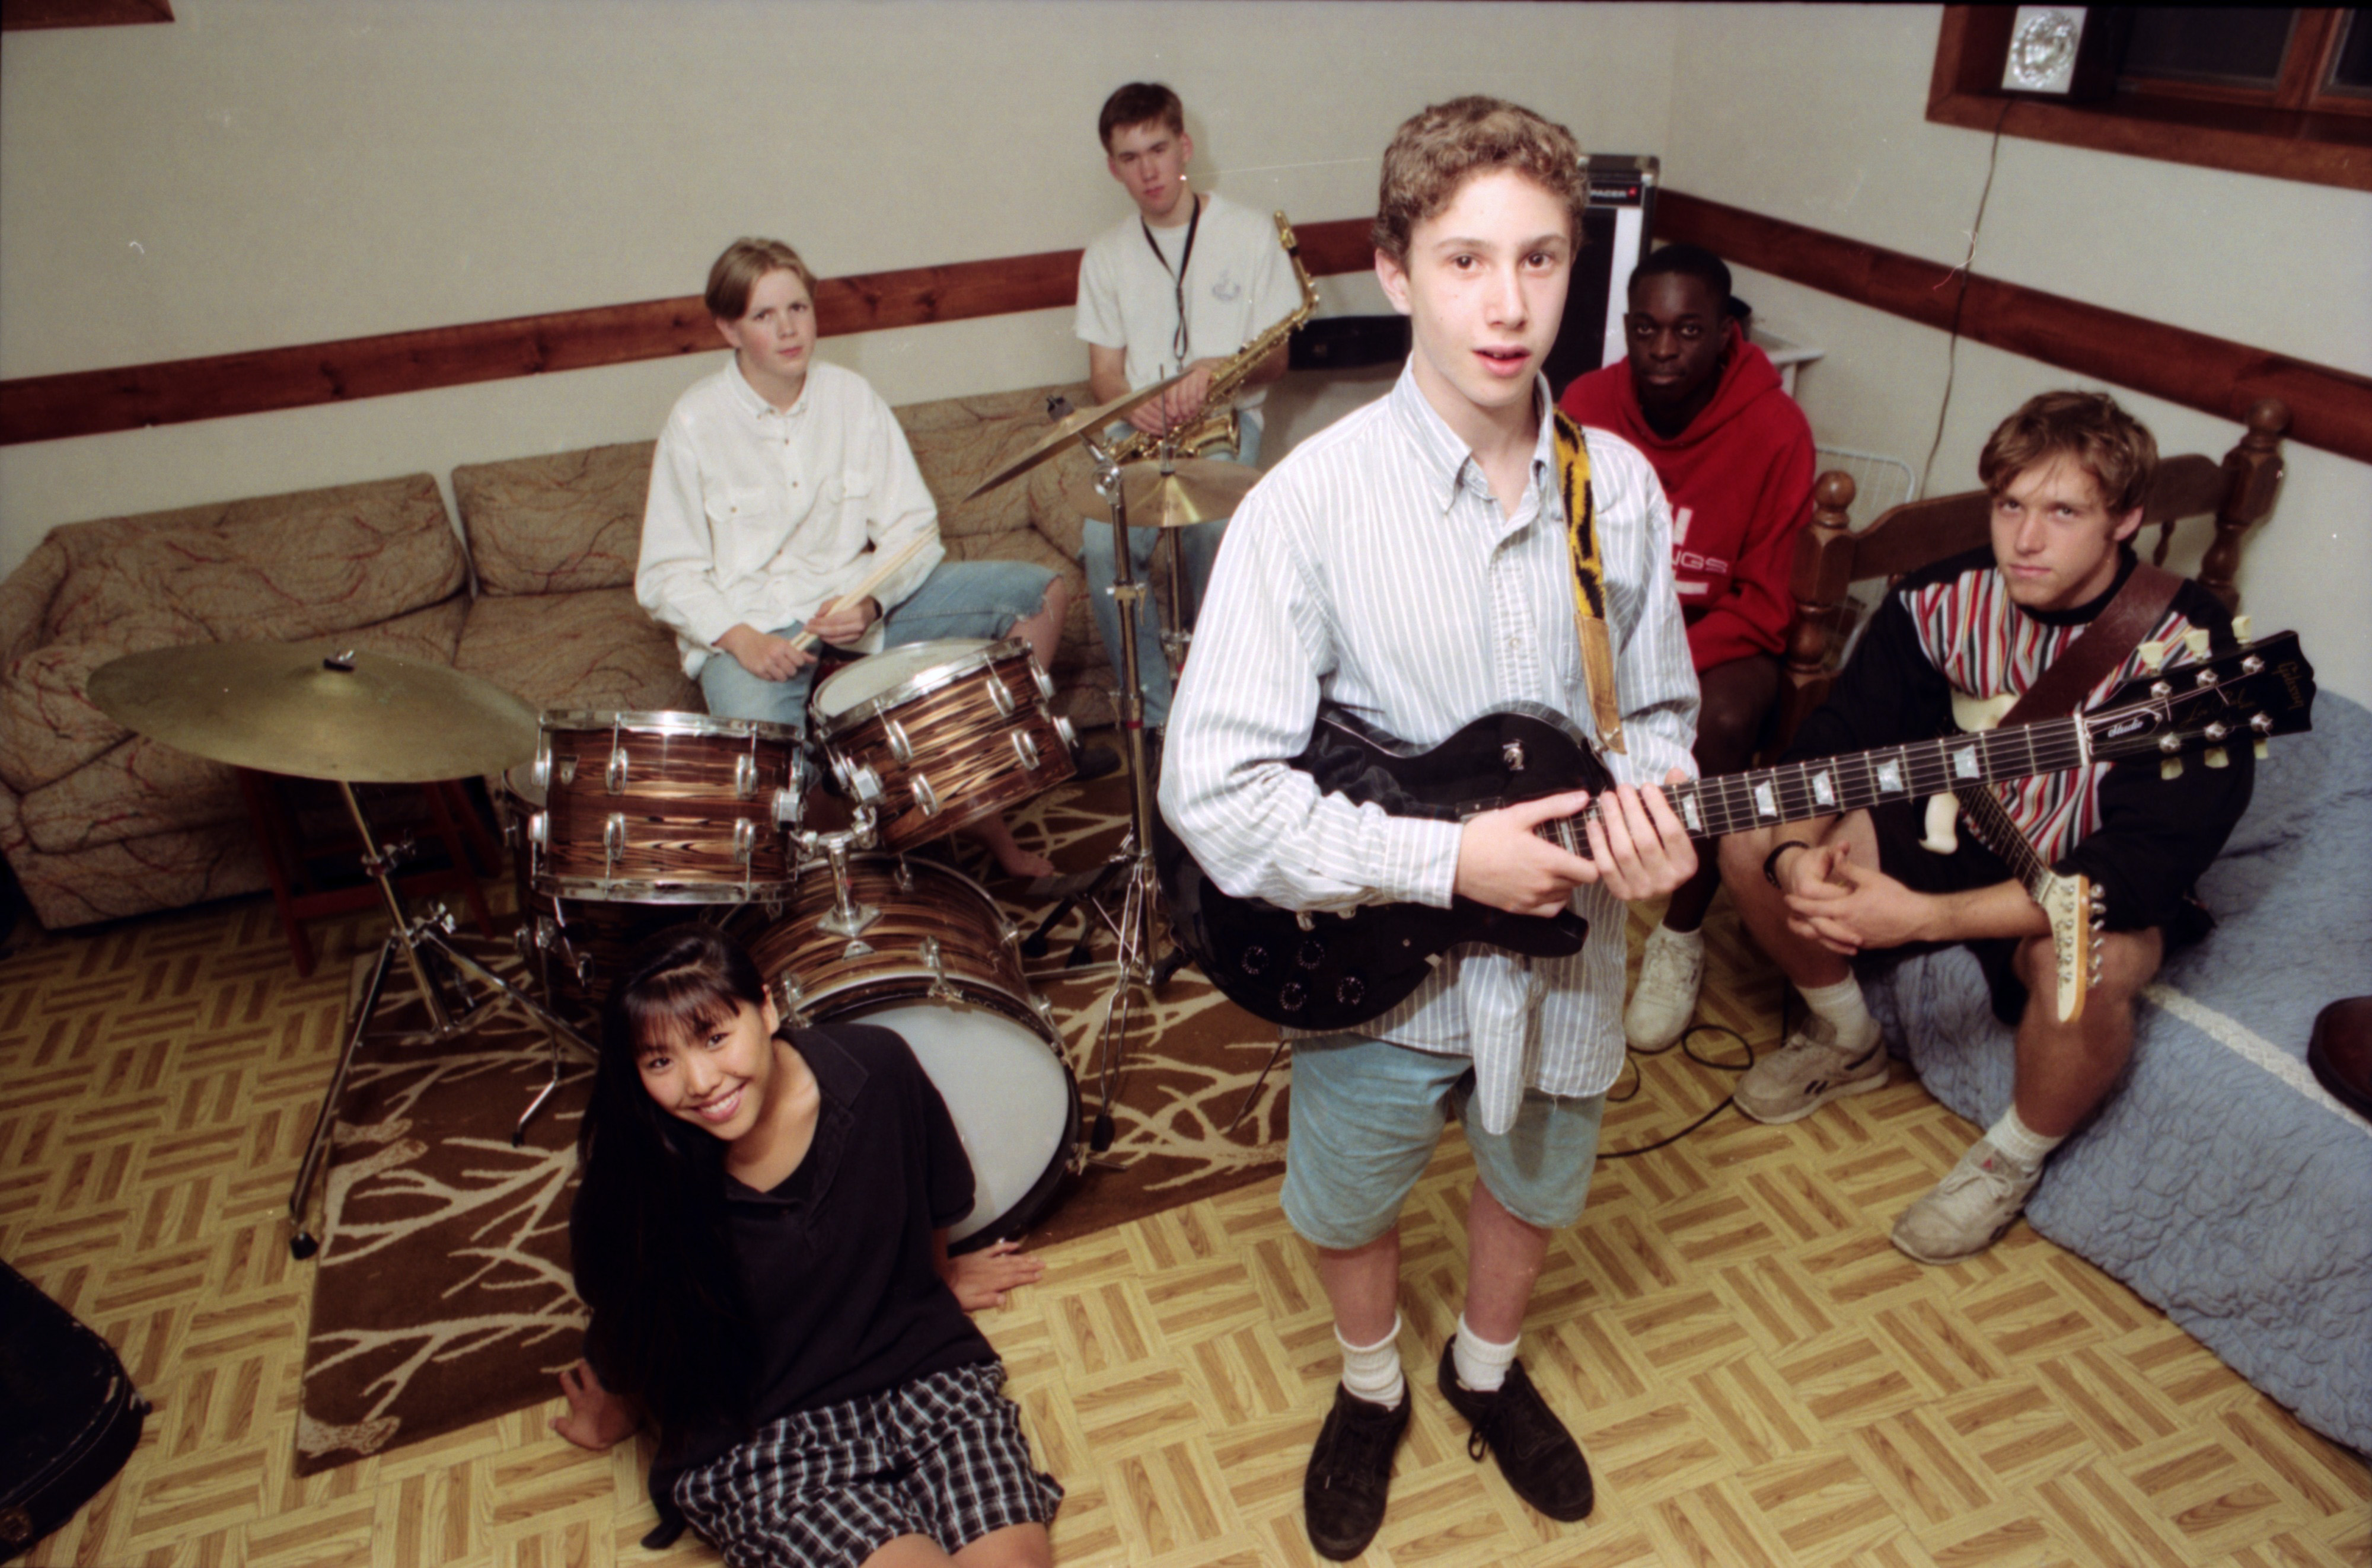 Randy Napoleon and jazz band friends, August 1993 image